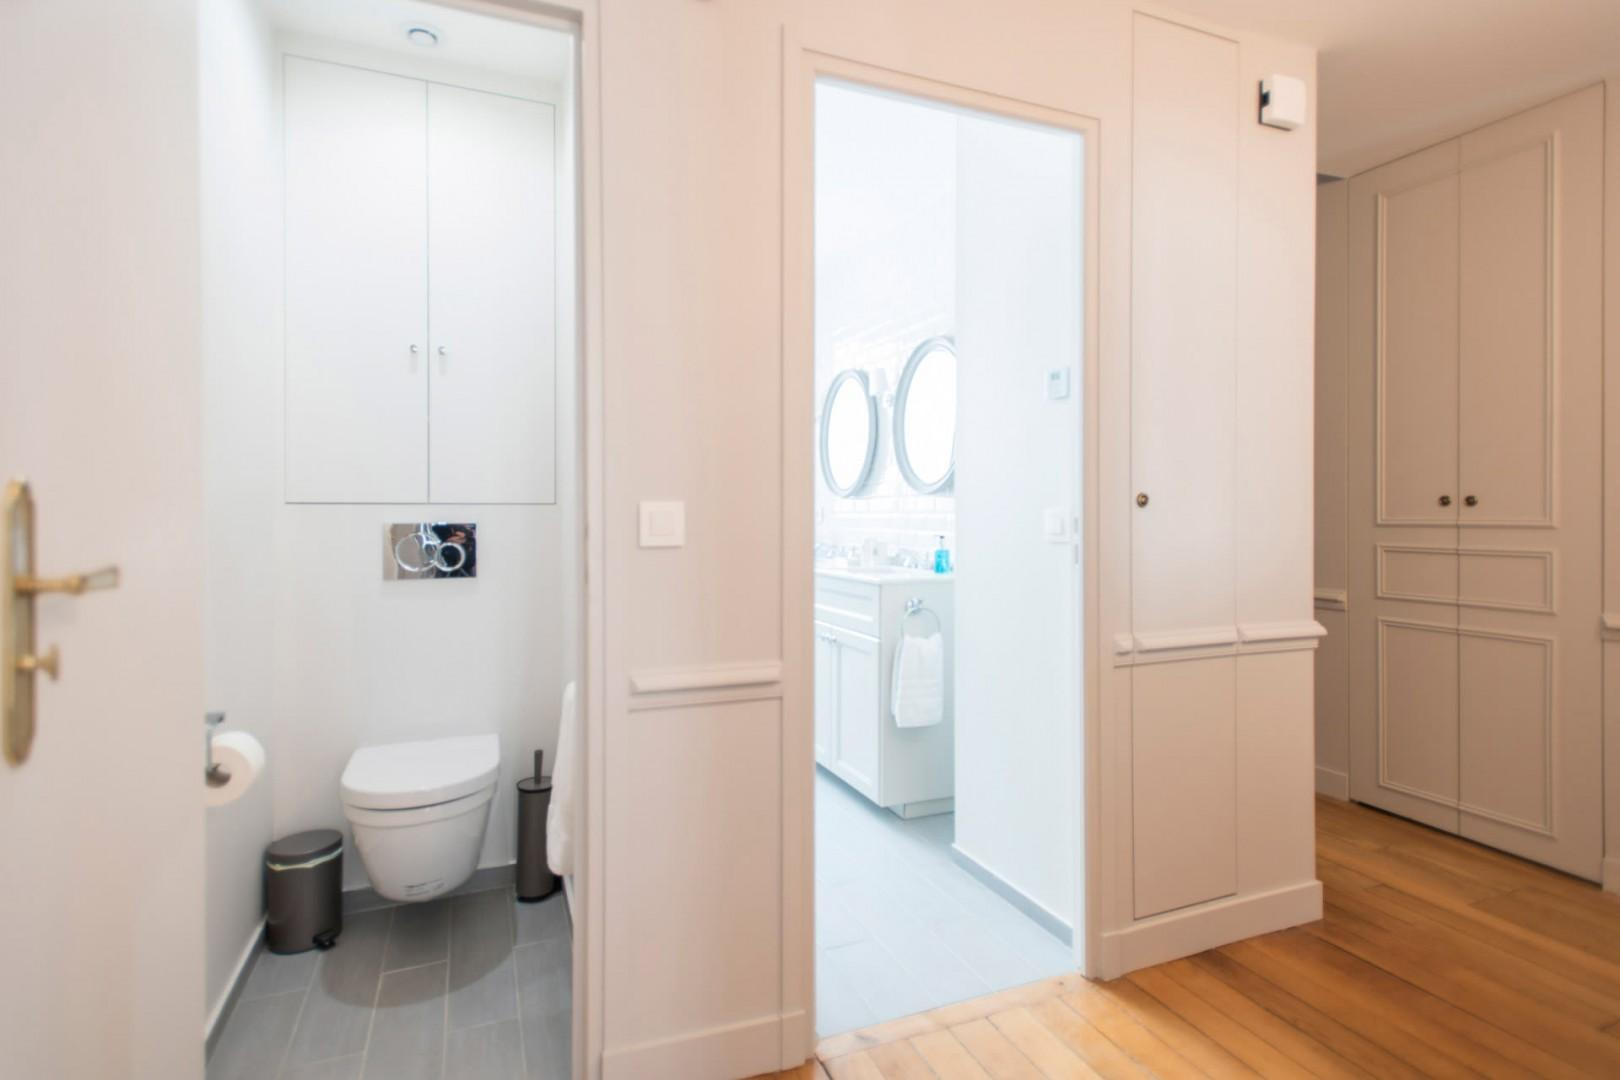 There is a practical half bath with toilet and sink next to bathroom 1.